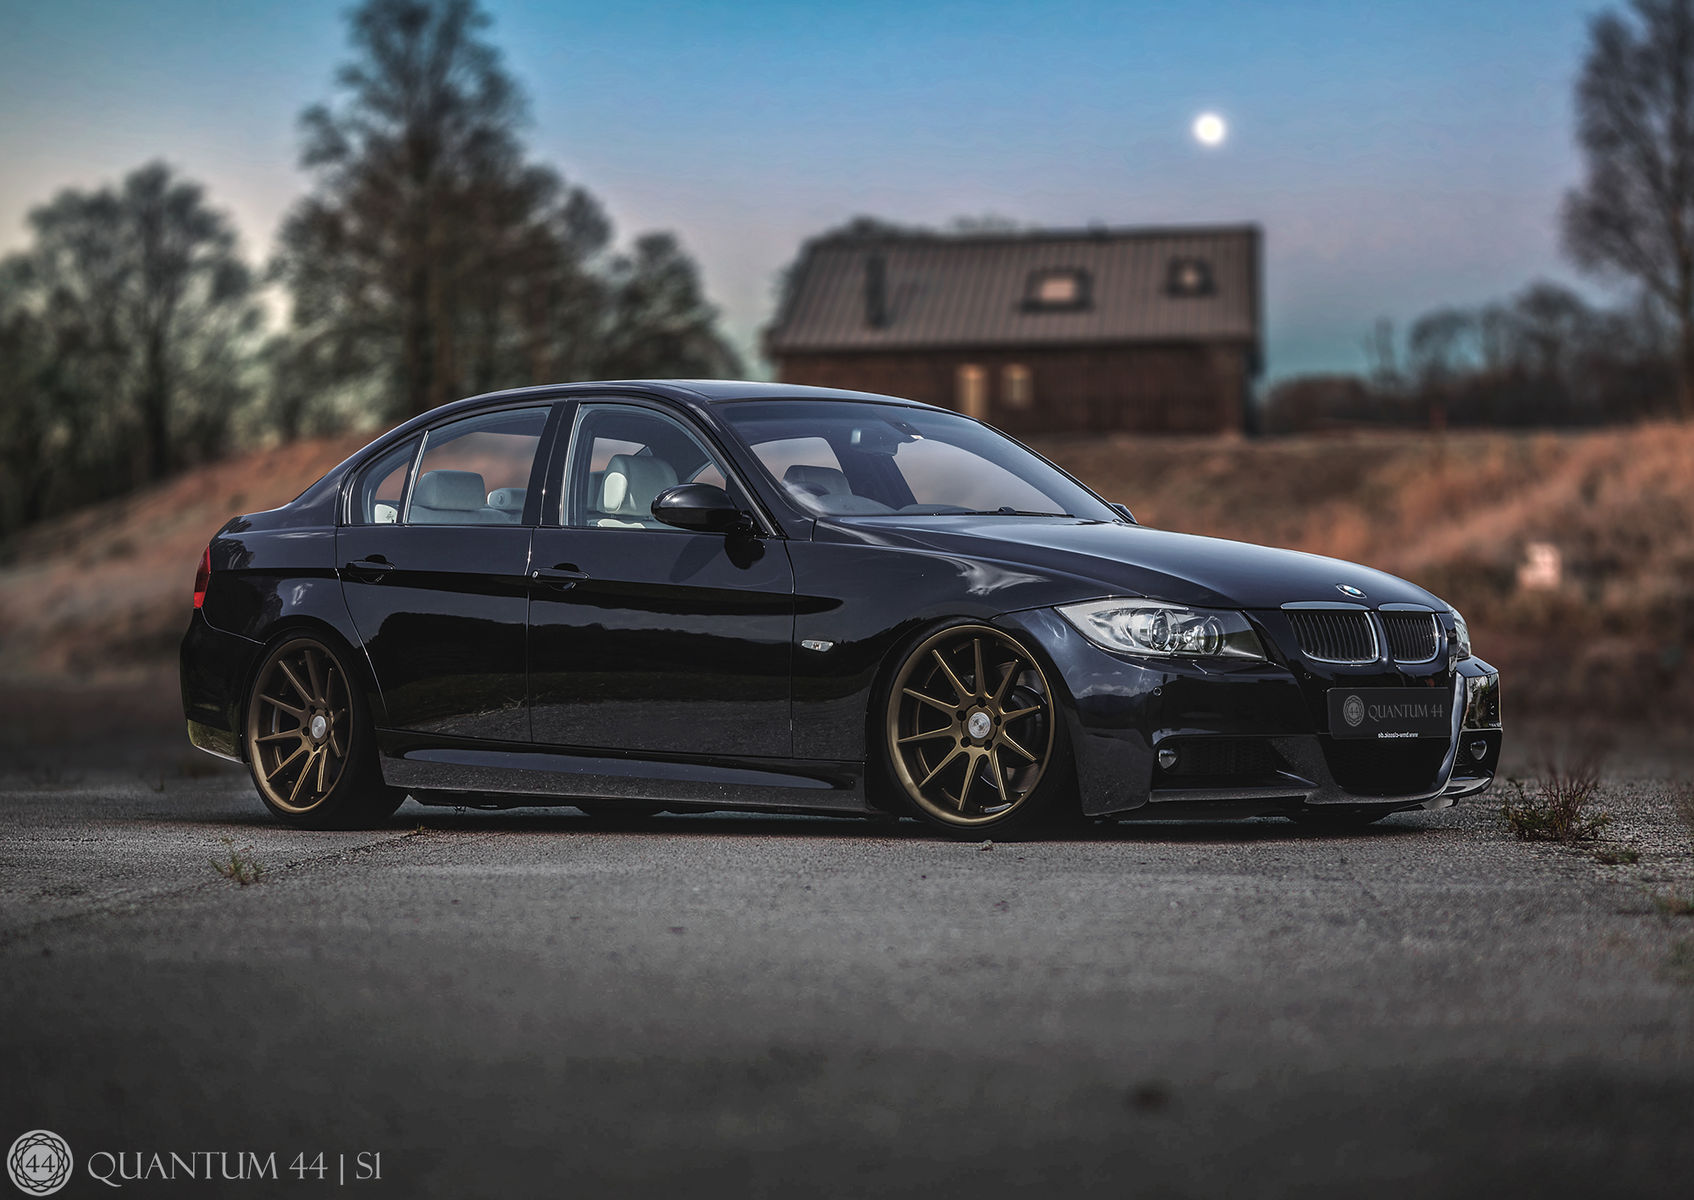 BMW 3 Series | quantum44 s1 -  BMW E90